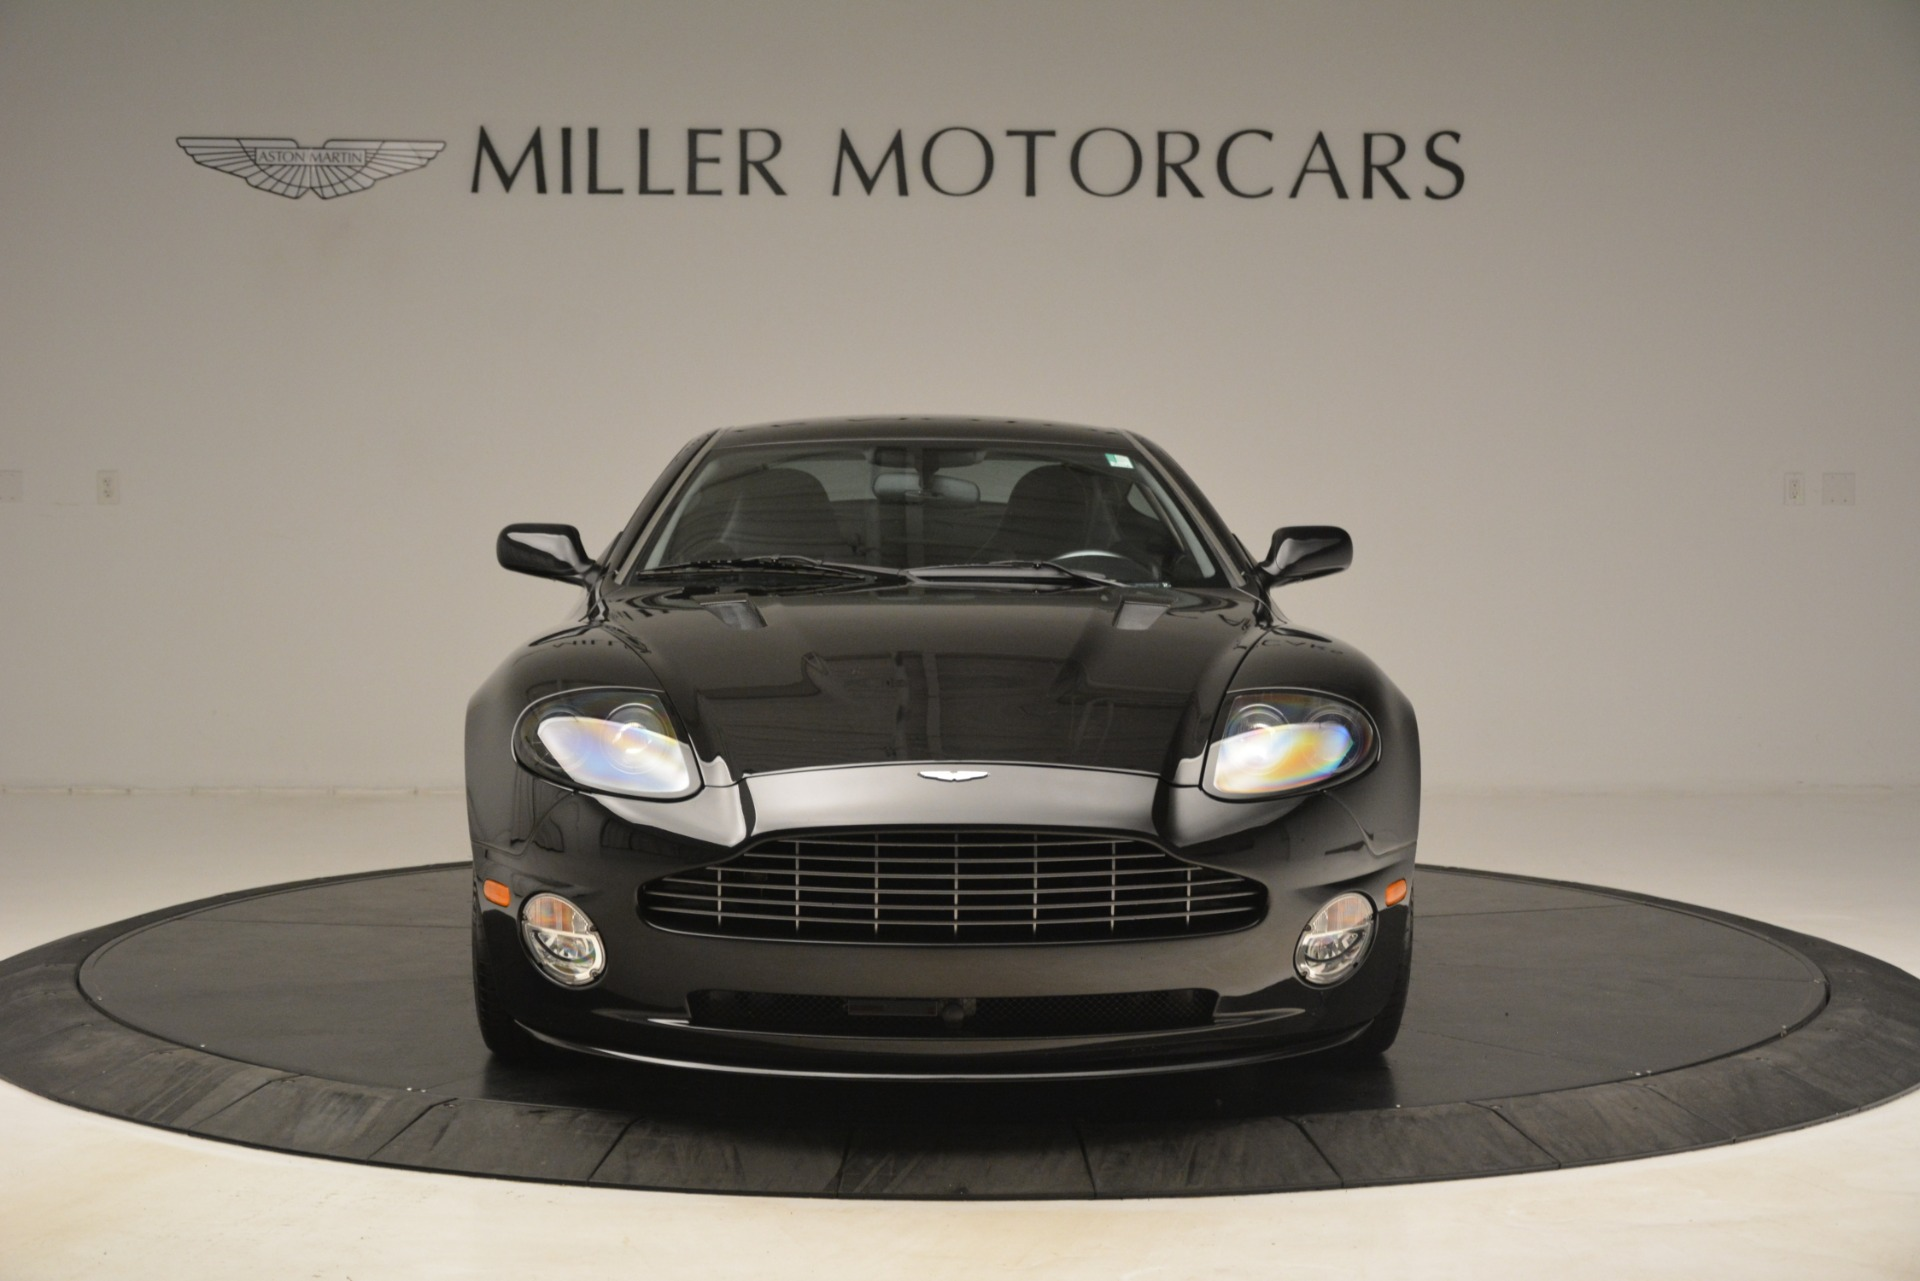 Used 2005 Aston Martin V12 Vanquish S Coupe For Sale In Greenwich, CT 3218_p12